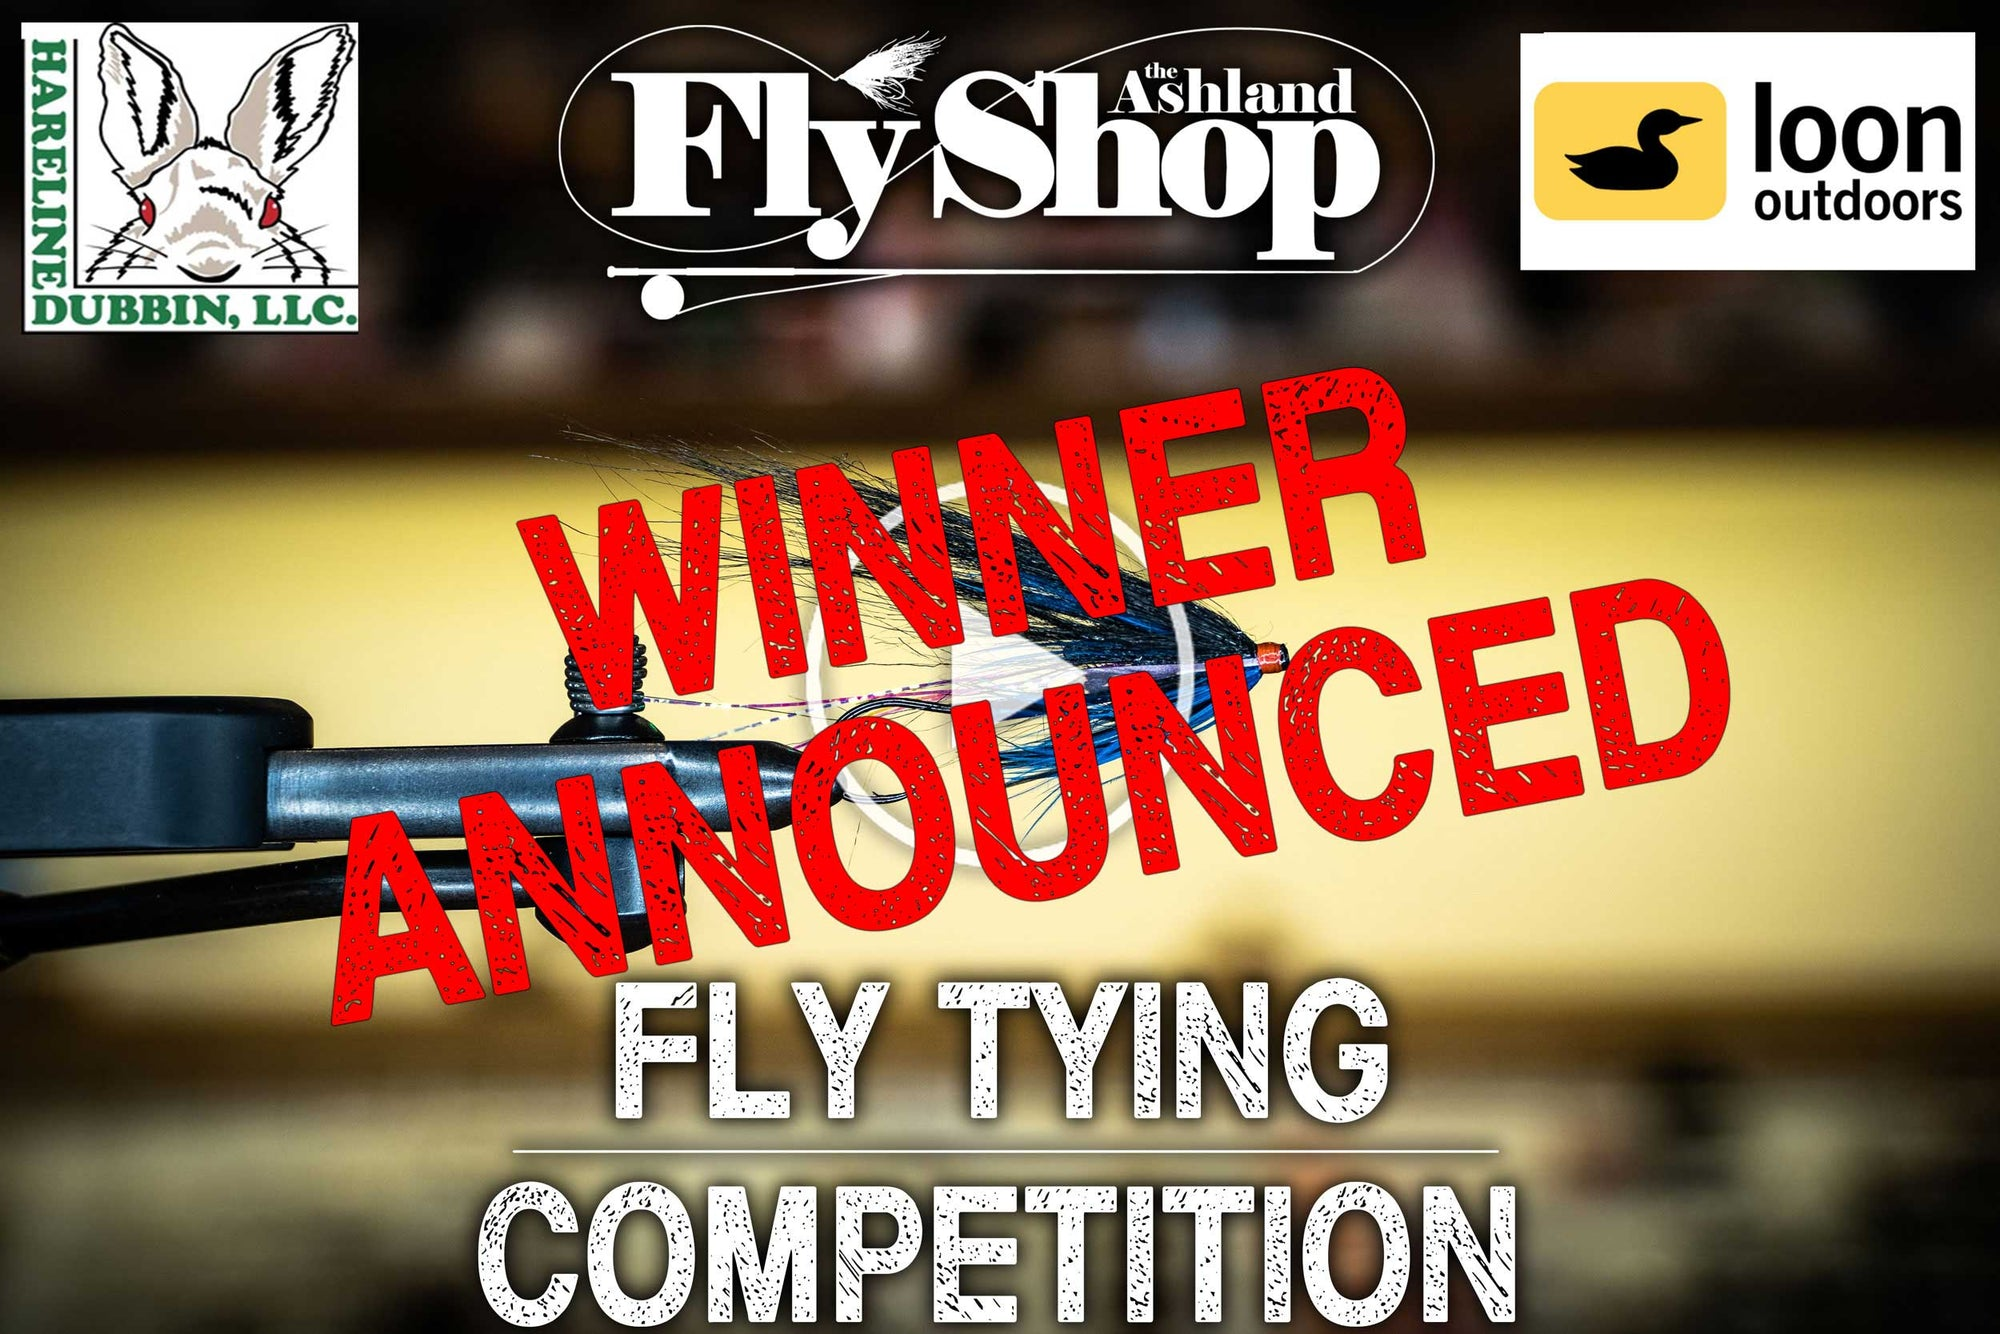 AFS Tying Contest Winner Announcement